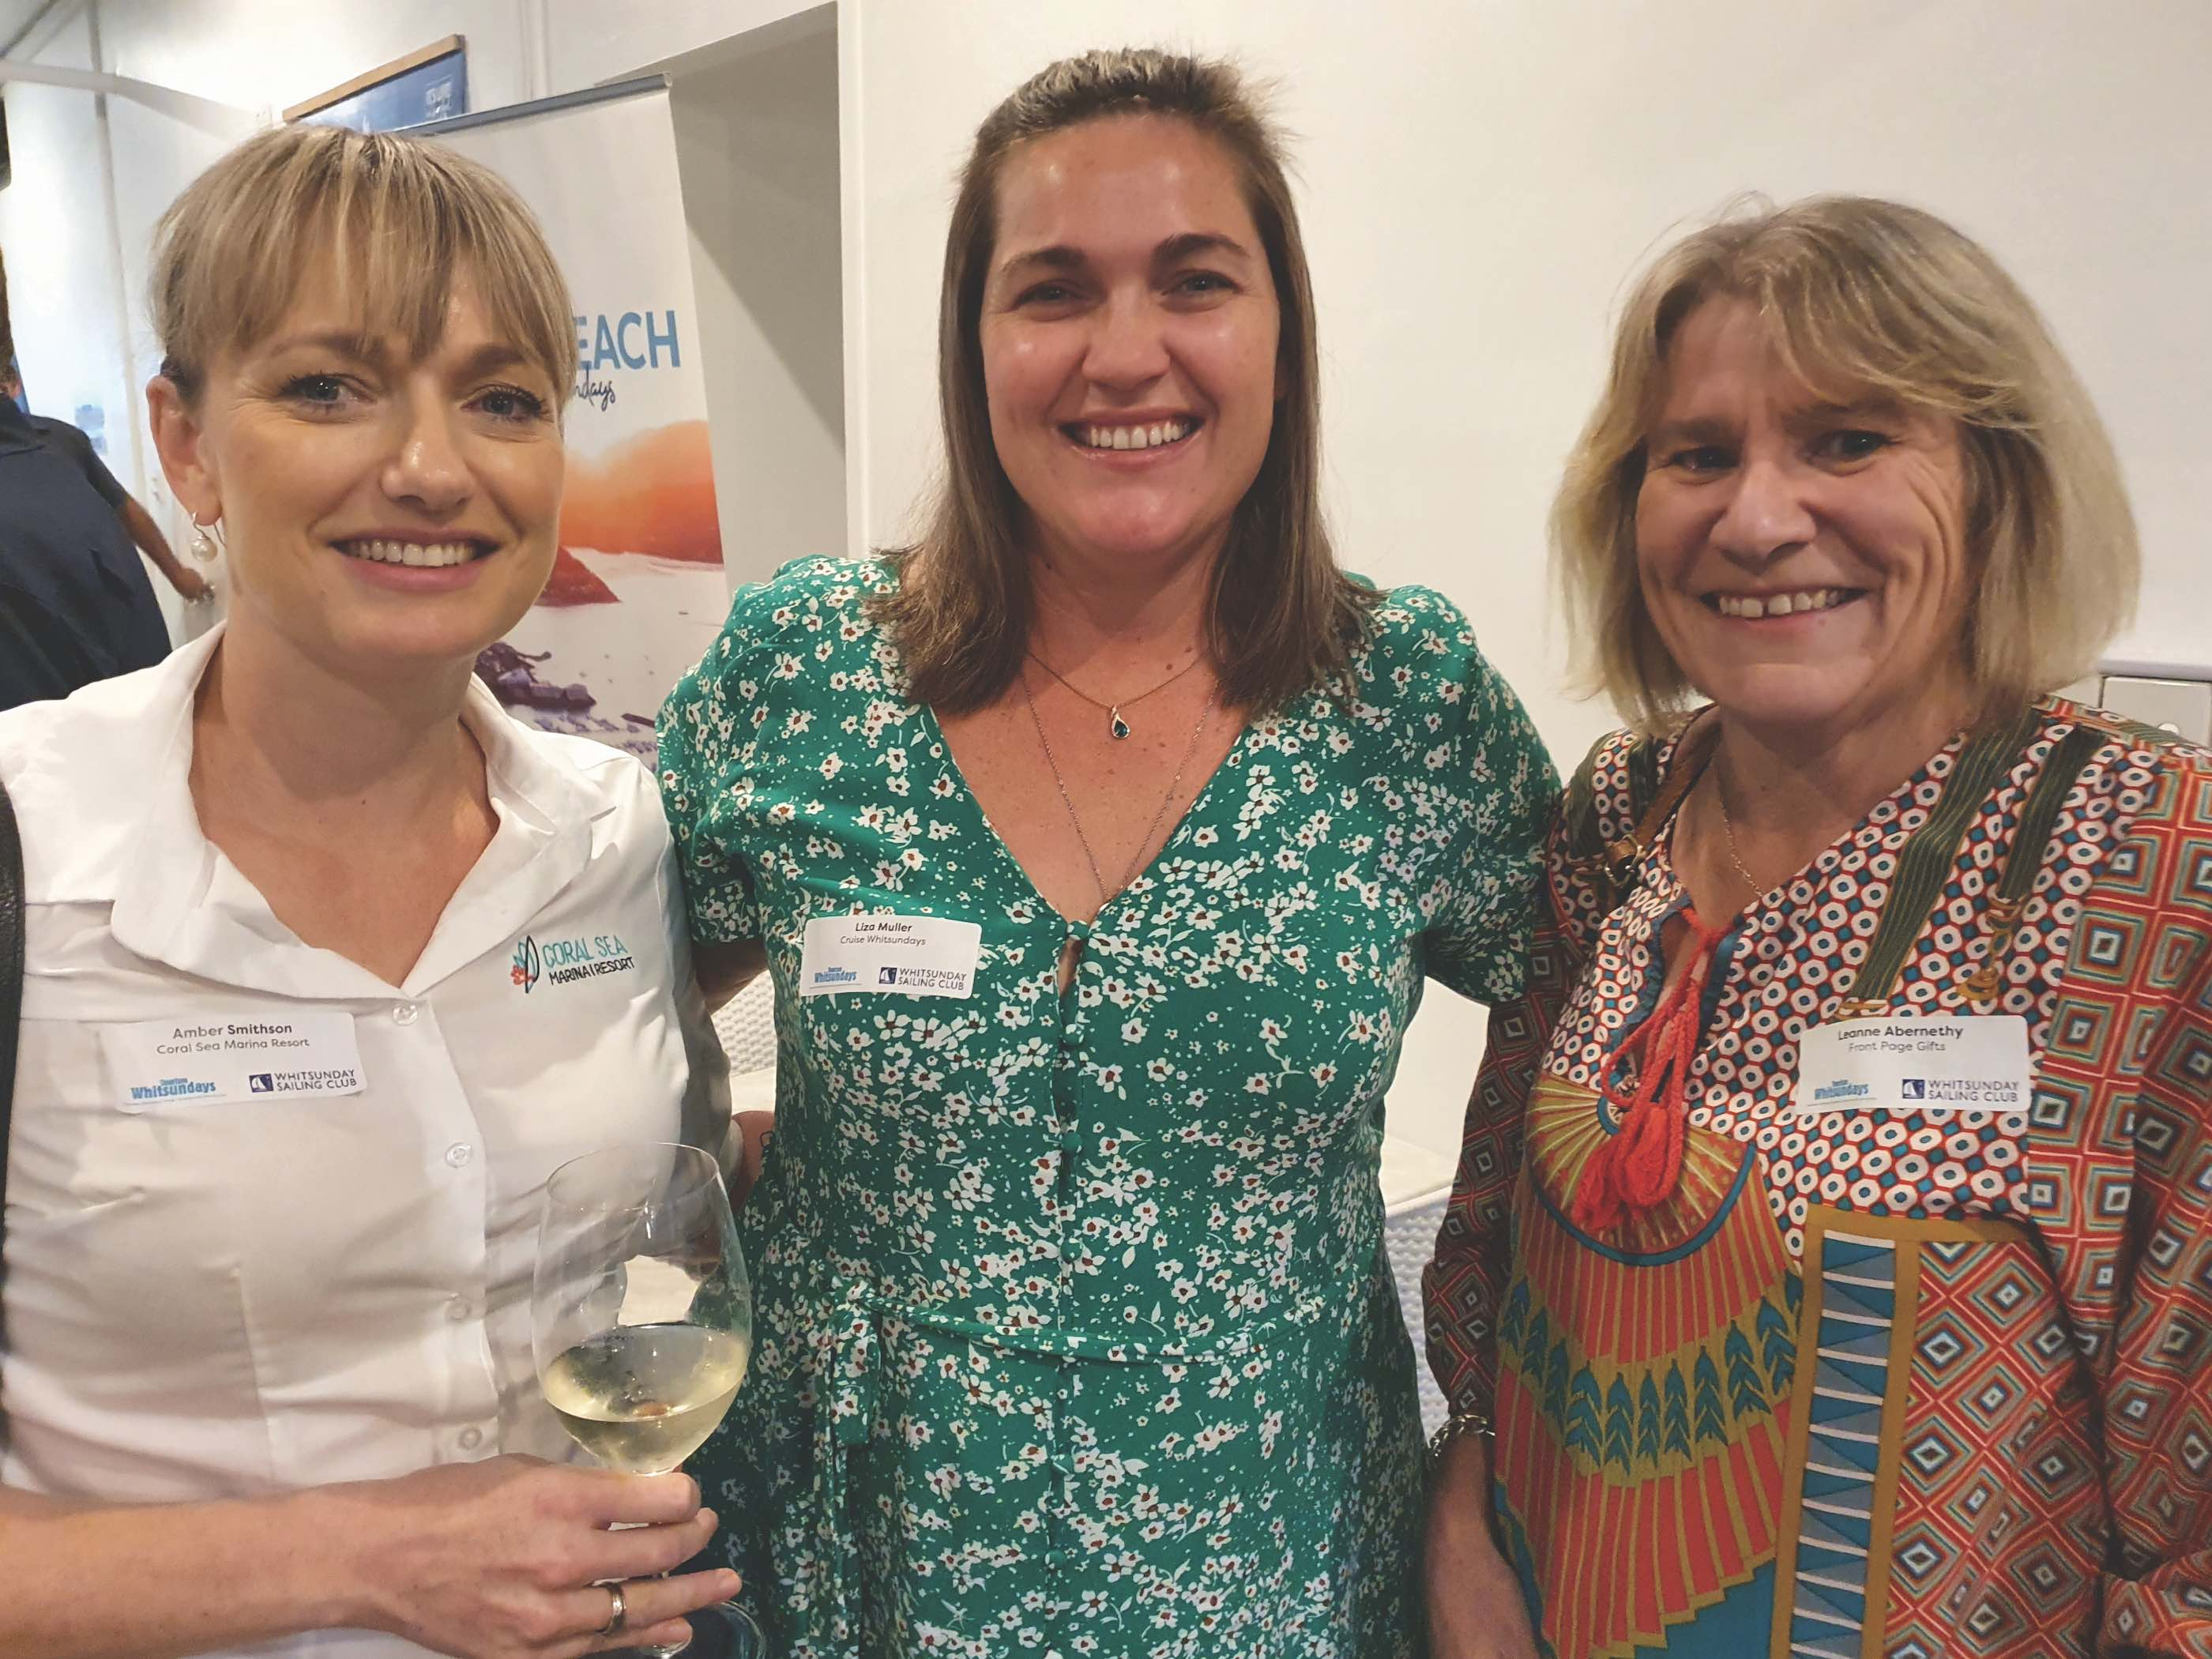 Amber Smithson, Liza Muller and Leanne Abernethy